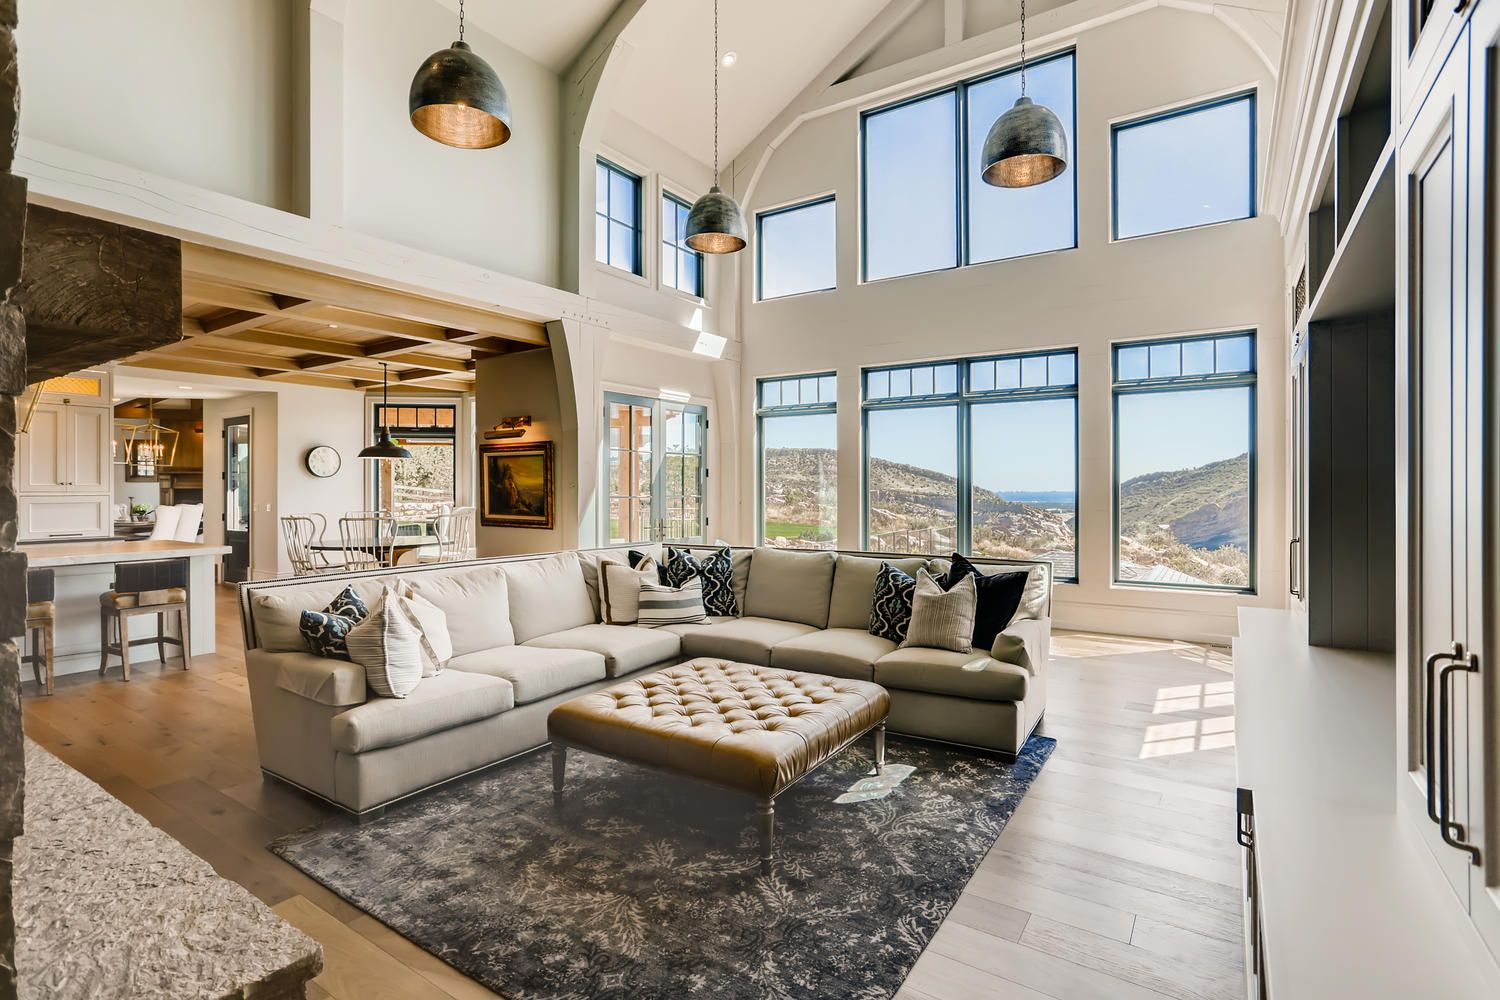 An amazing ranch style living room high in the colorado mountains! A perfect gettaway for the busy city goer. #customhome #customarchitecture #customresidential #residentialarchitecture #residentialarchitect #interiordesign #interiorarchitecture #coloradoarchitecture #coloradoarchitect #denverarchitecture #denverarchitect #goddensudik #decor